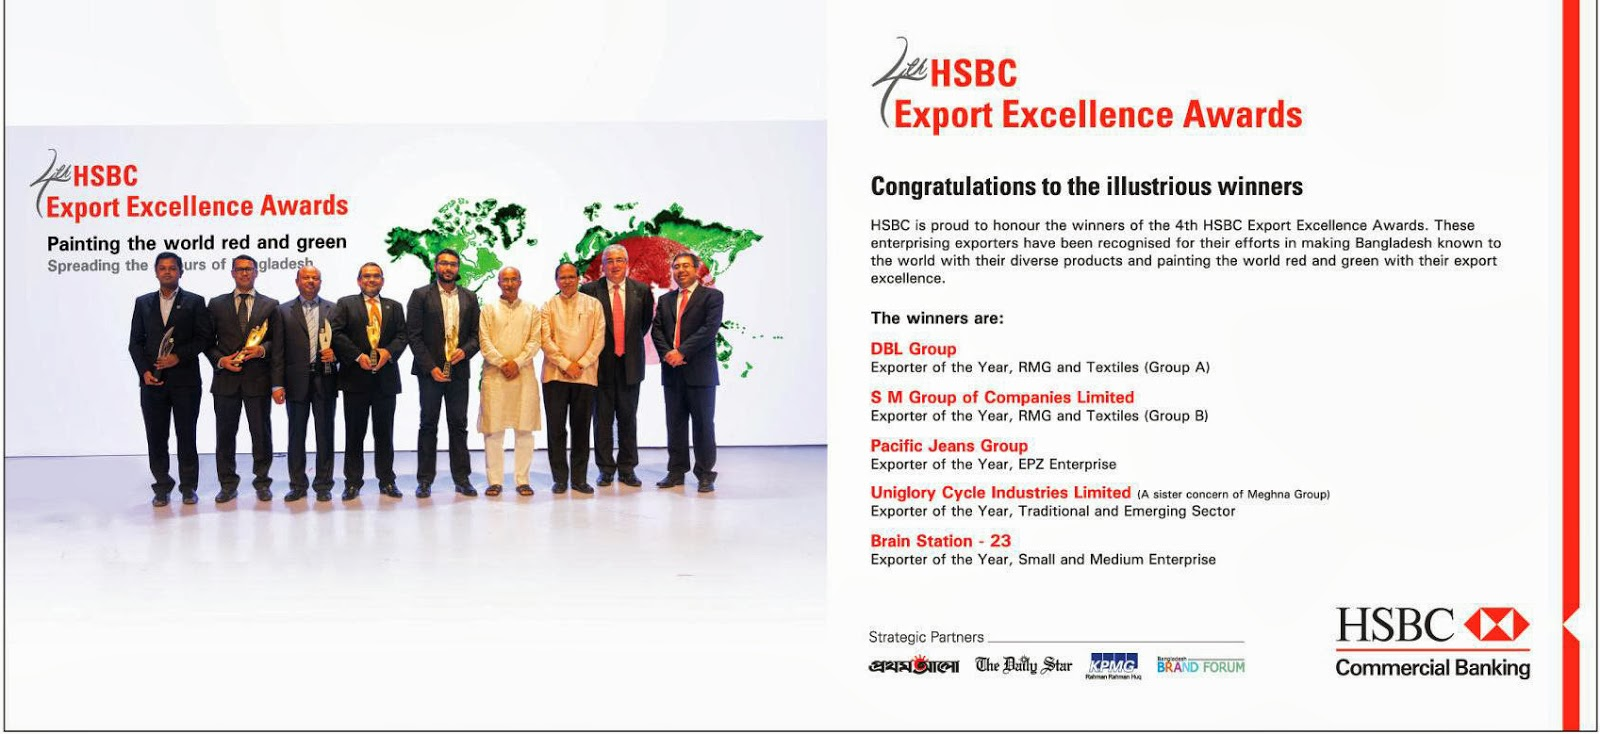 crm strategy of hsbc in bangladesh Hsbc bangladesh is rated among the highest level of rating for any bank or financial institution in bangladesh4 hsbc bangladesh offers a 35 hsbc's initiatives for educational development in bangladesh in 2009 school of hope visit to the zoo: hsbc staff joined the children of school of.